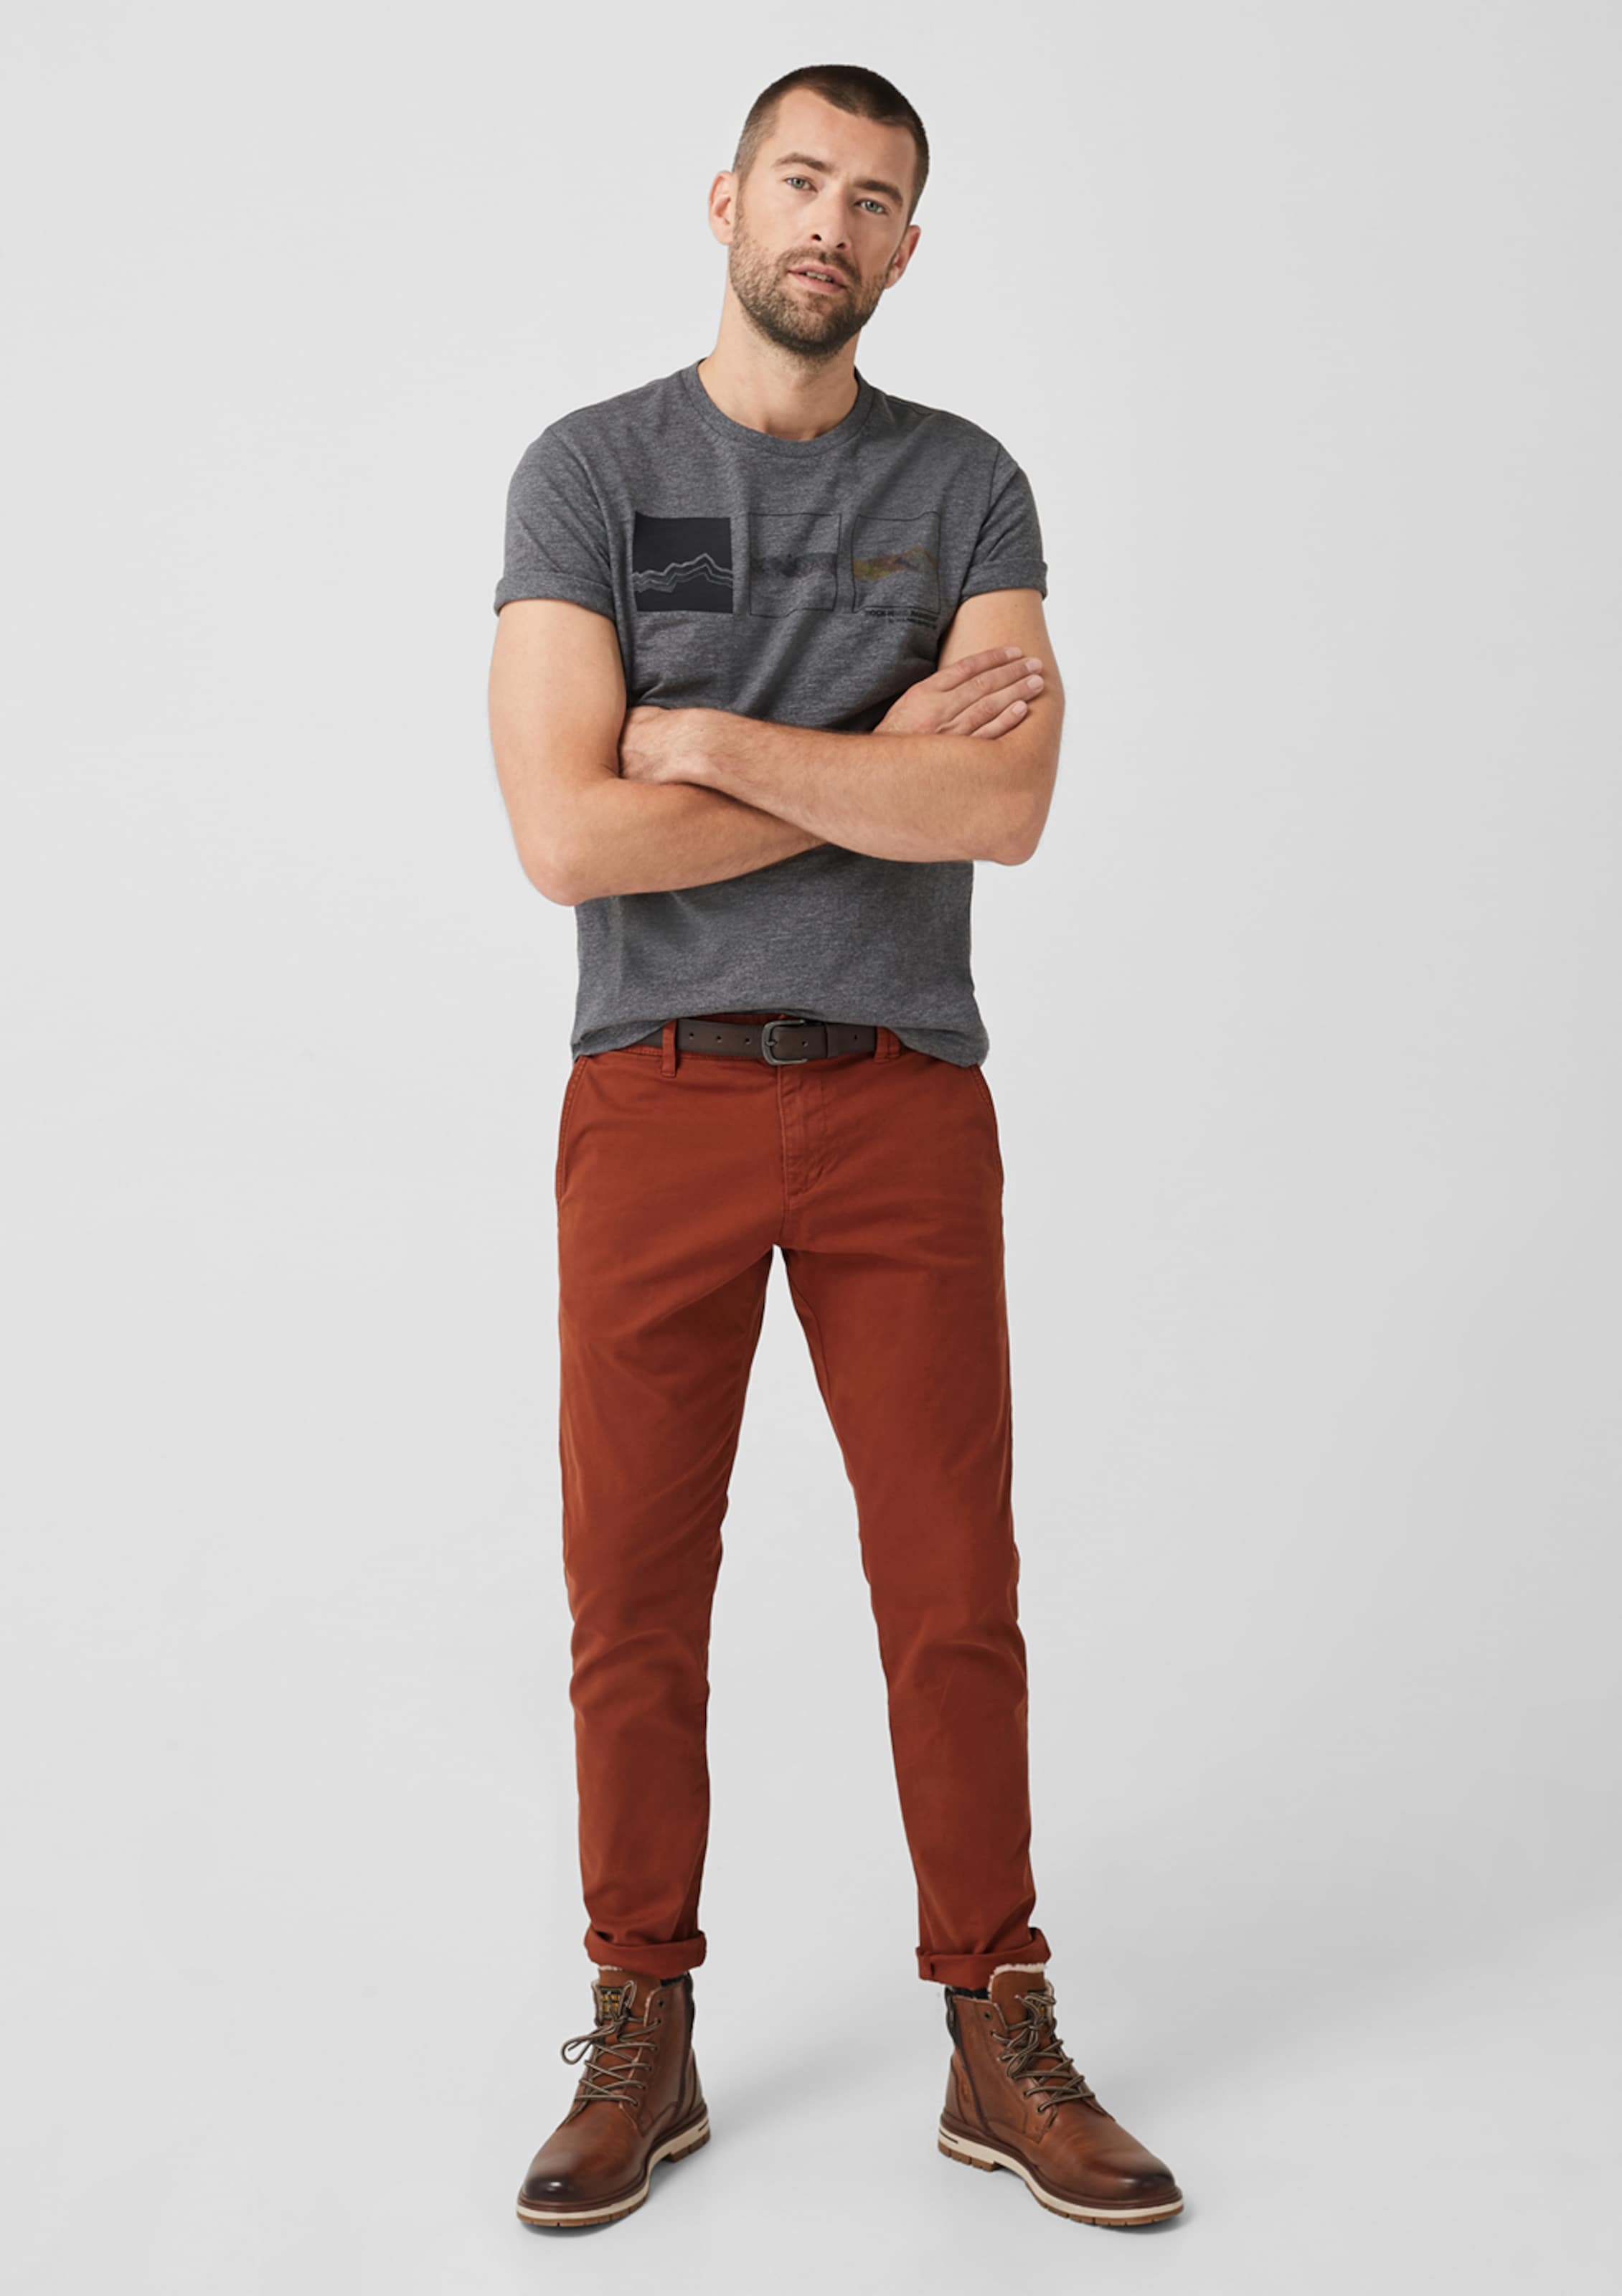 In S oliver oliver Chino Rostbraun S In Chino Rostbraun S In oliver Chino QrxsBhdCot